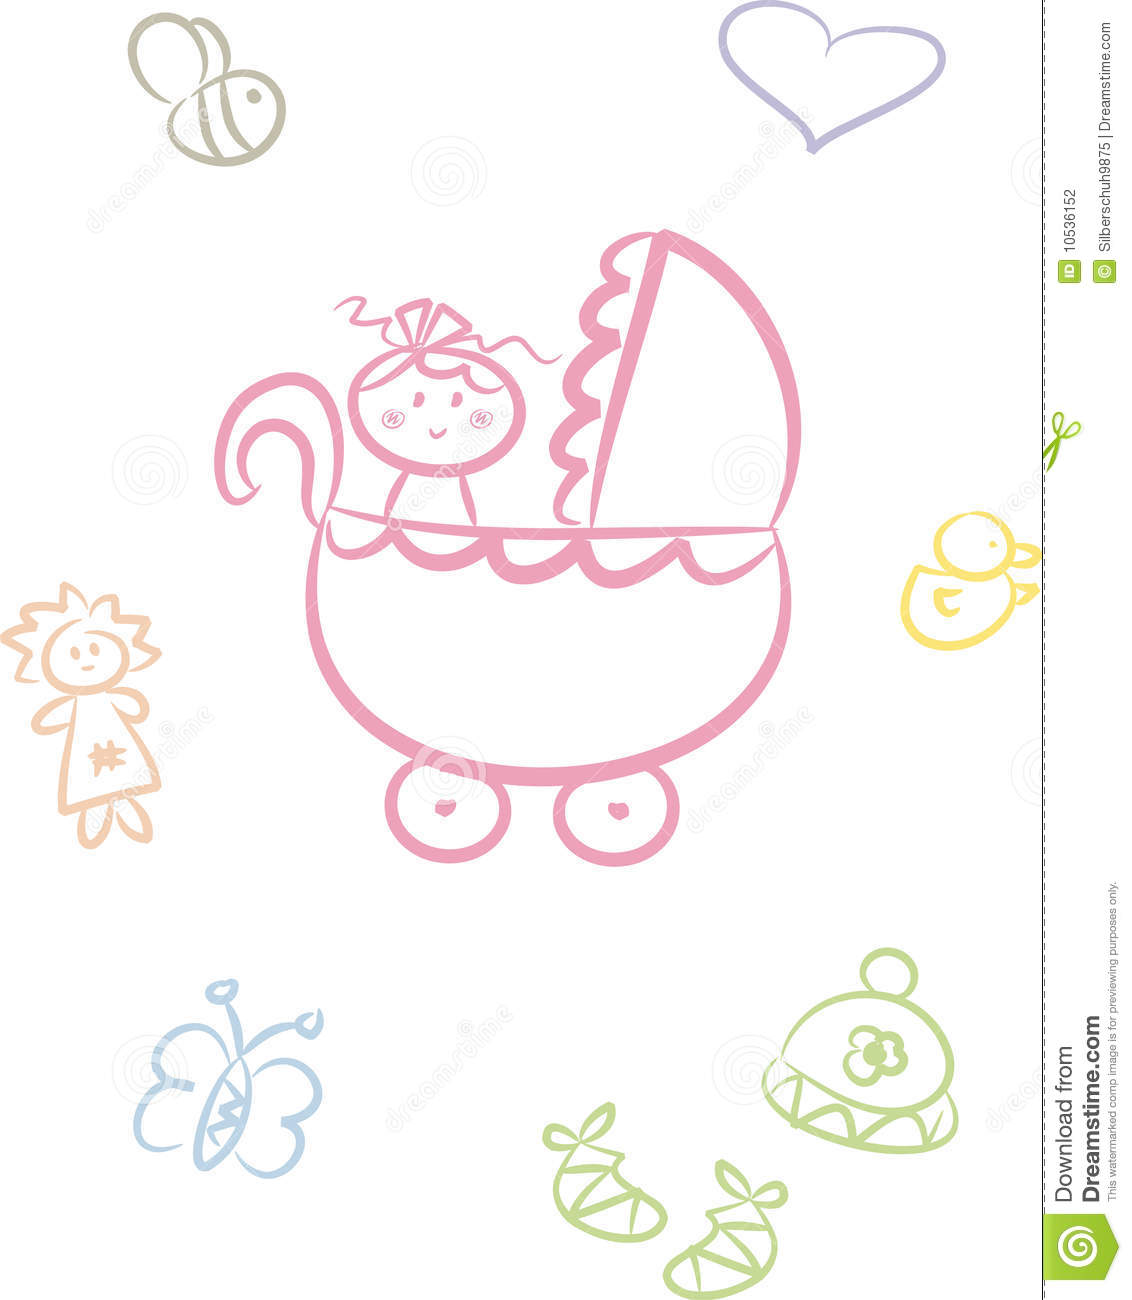 Cute Baby Doodle Set Girl Stock Vector Illustration Of